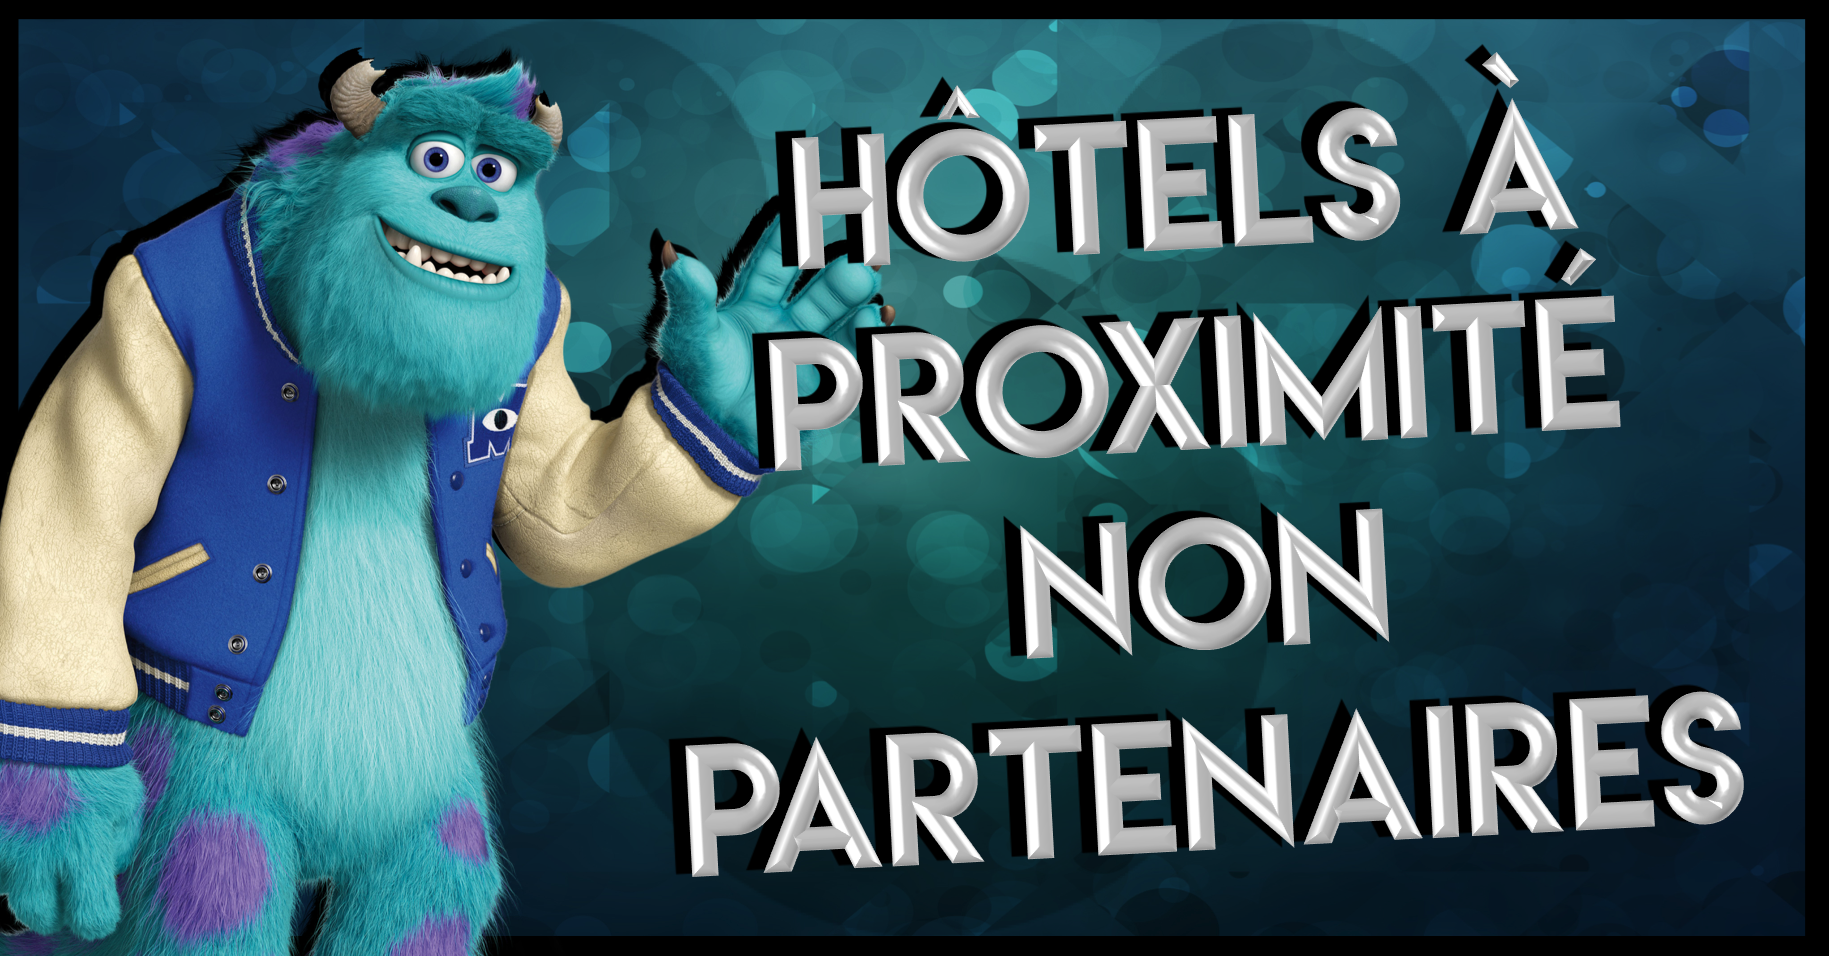 HOTELSNONPARTENAIRES.png